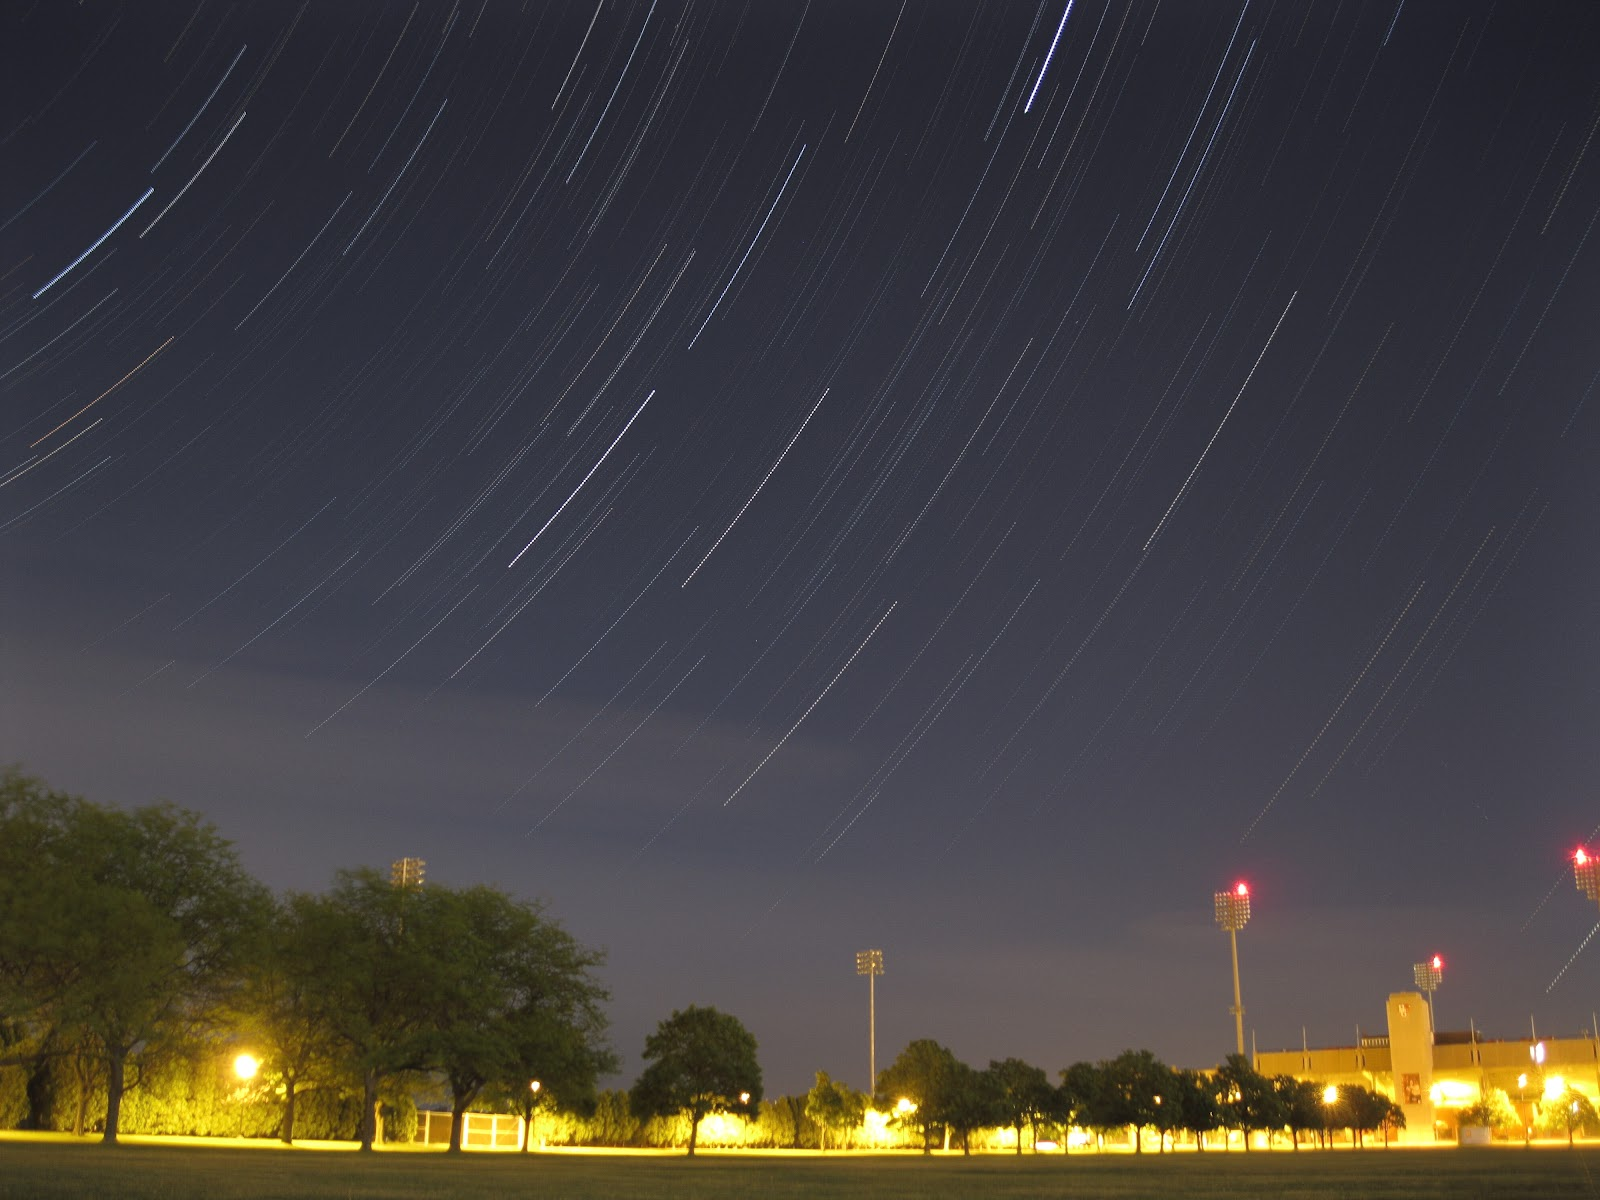 Check out my amateur astronomy and photography blog here.